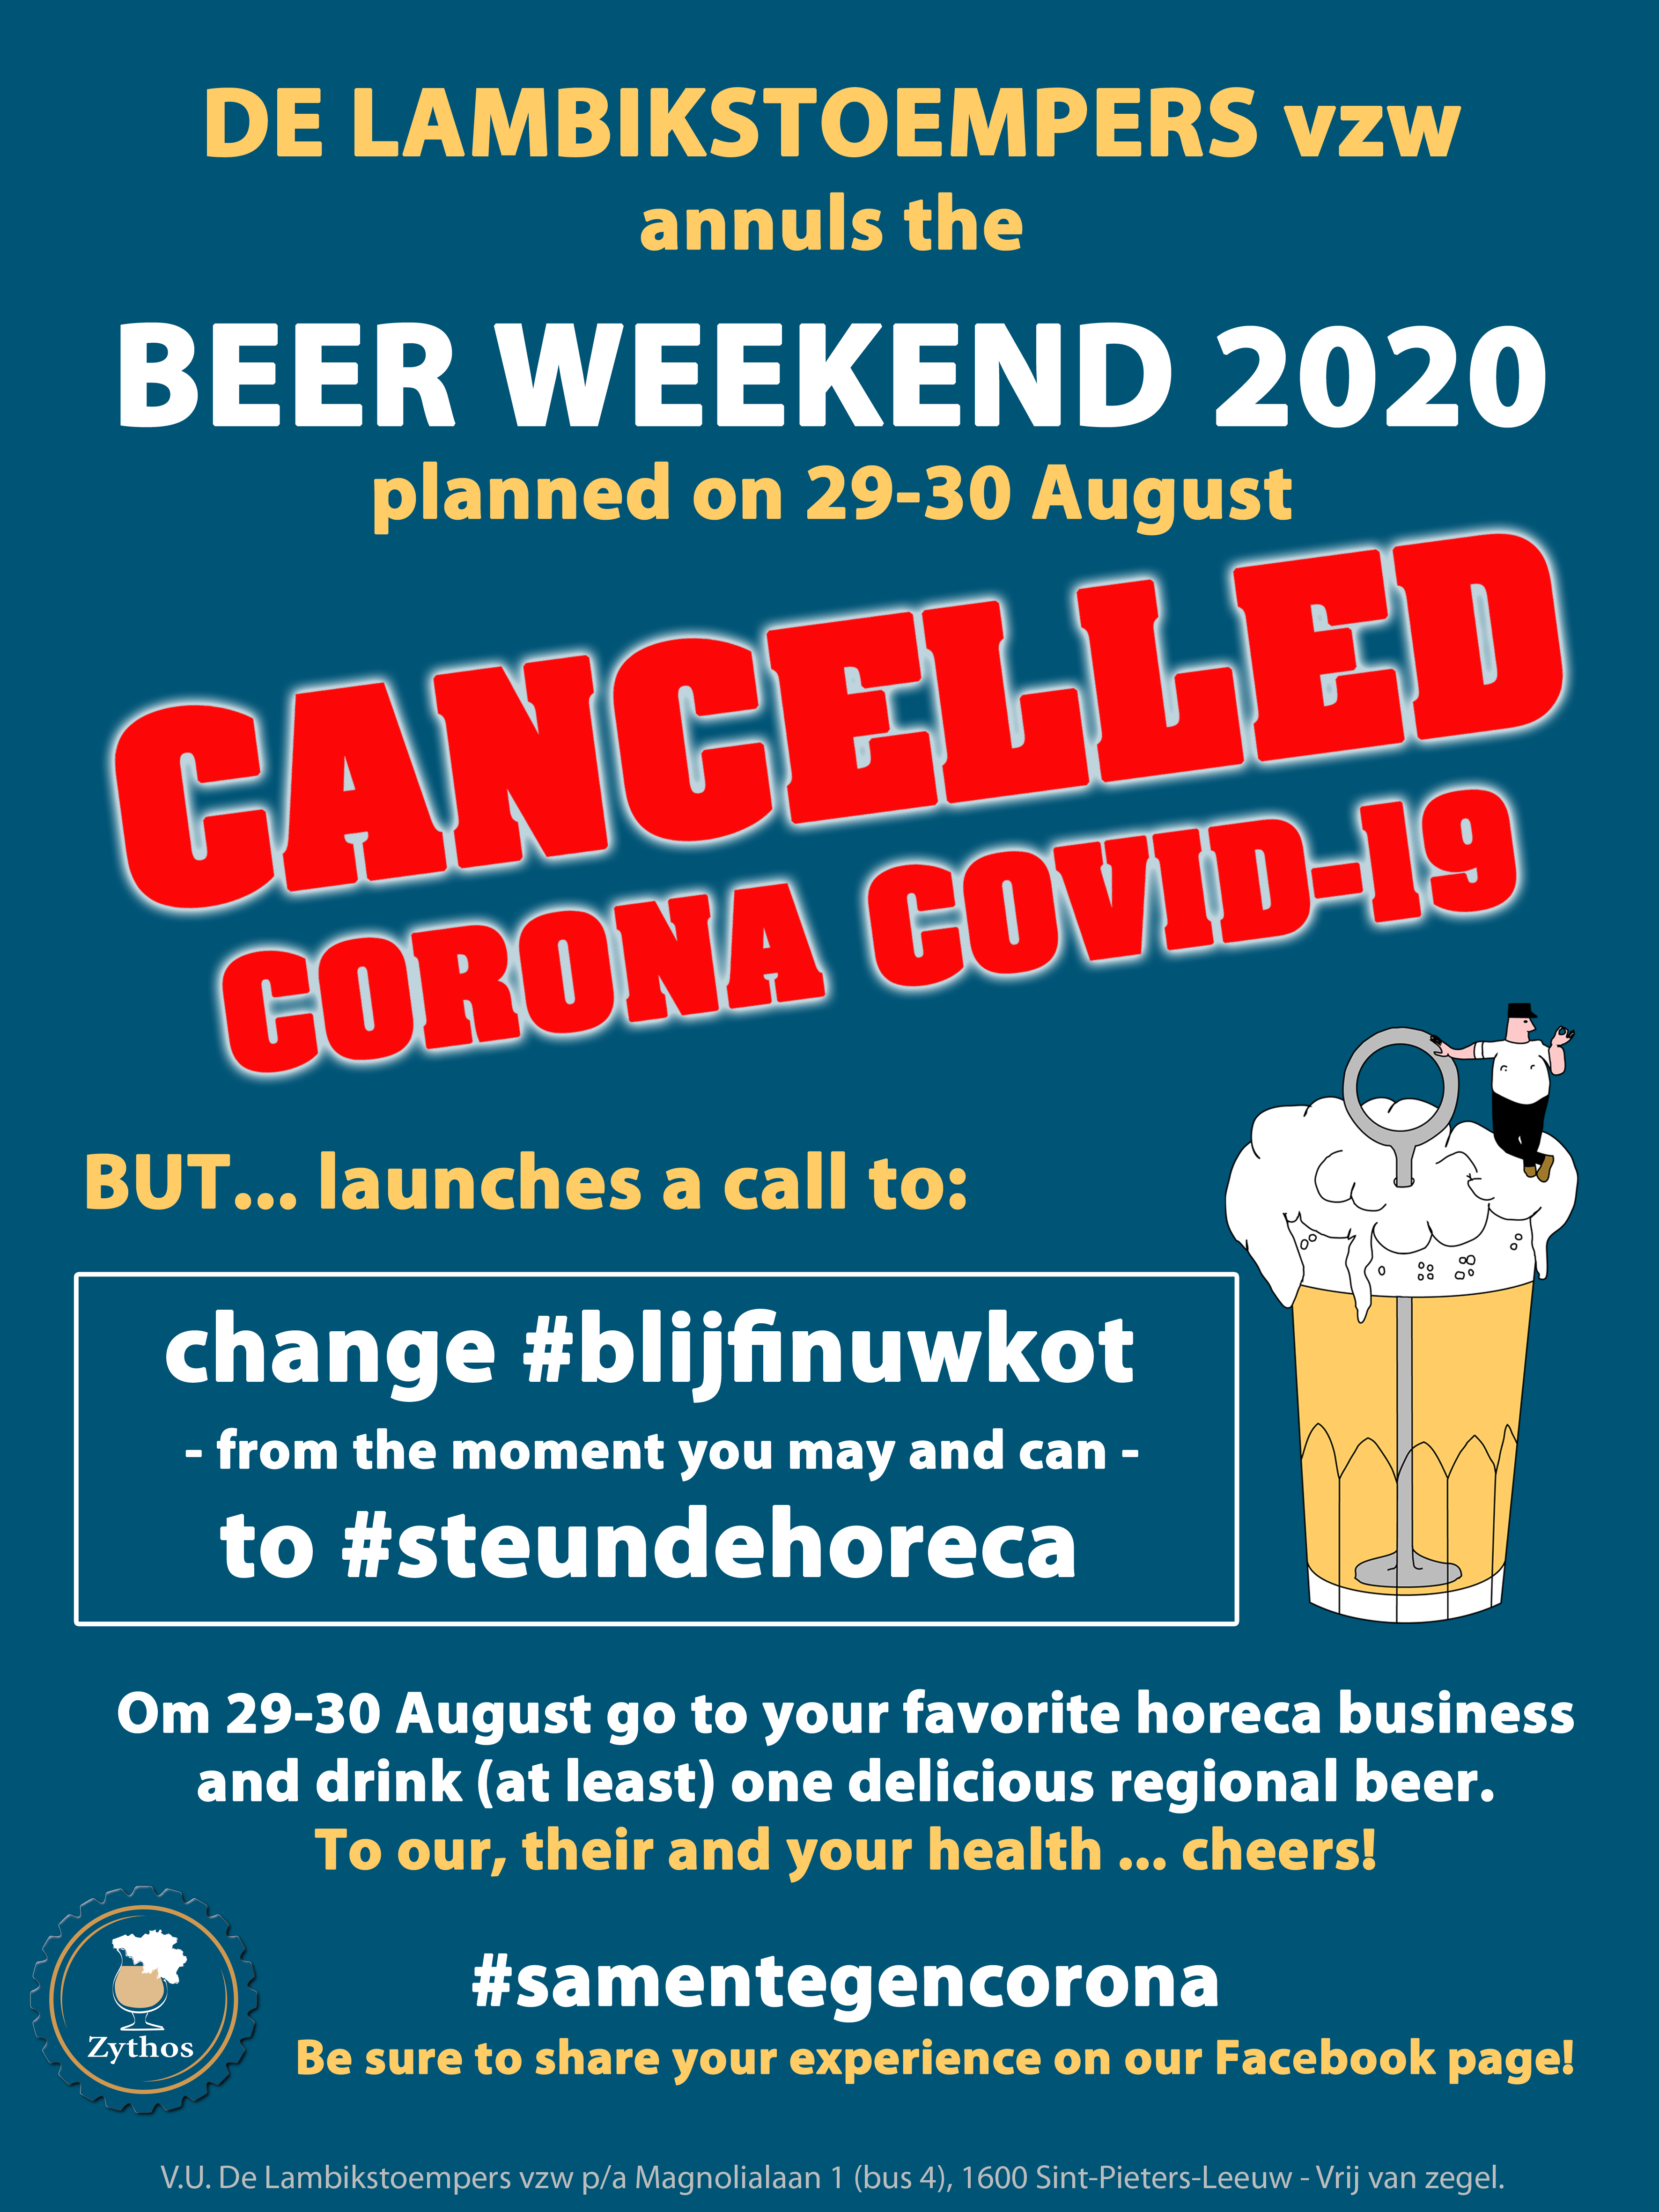 Lambikstoempers Beer Weekend 2020 cancelled